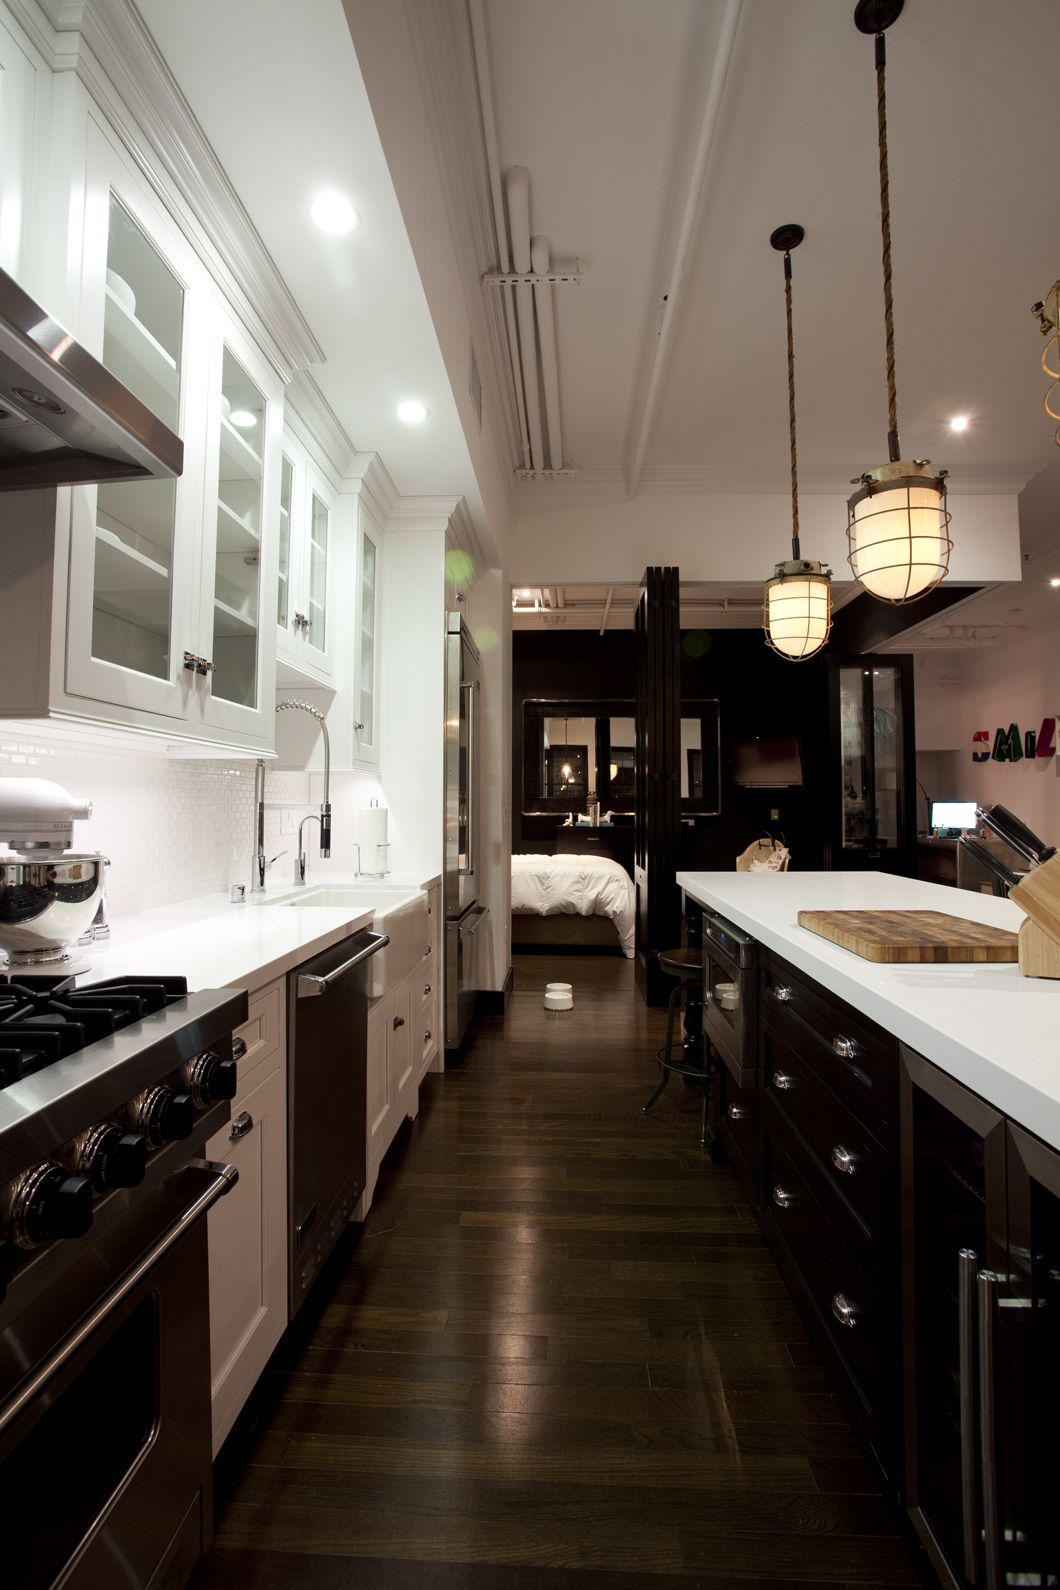 Cool use of cliche cabinetry mixed with modern touches could be